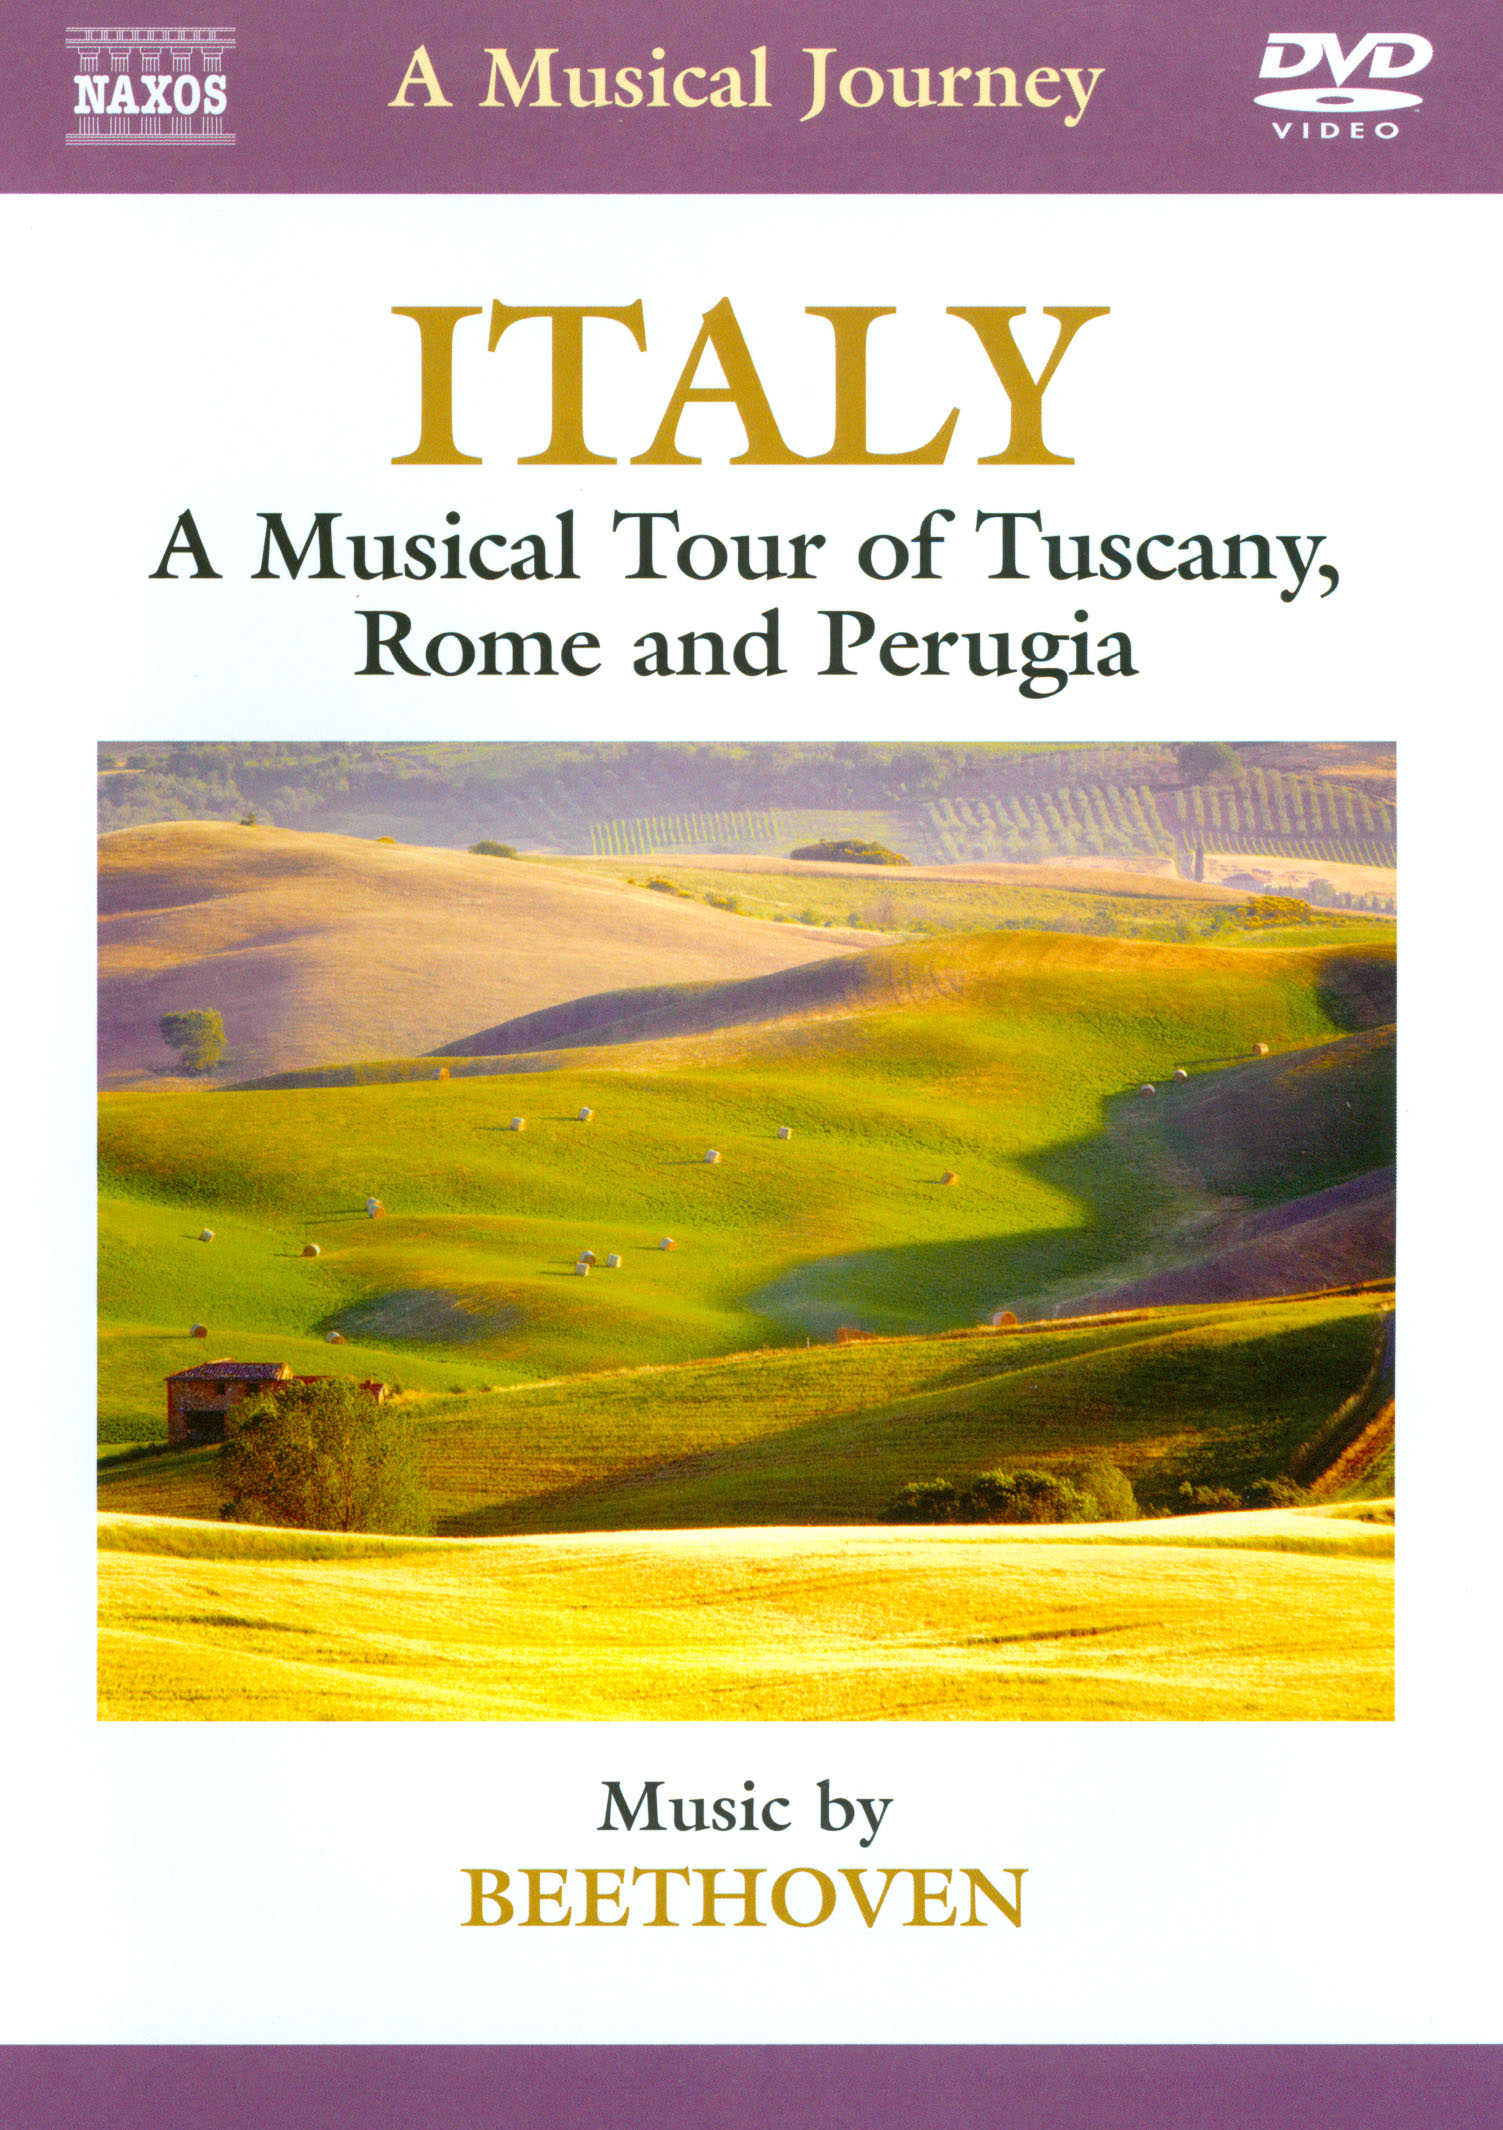 A Musical Journey: Italy - A Musical Tour of Tuscany, Rome and Perugia